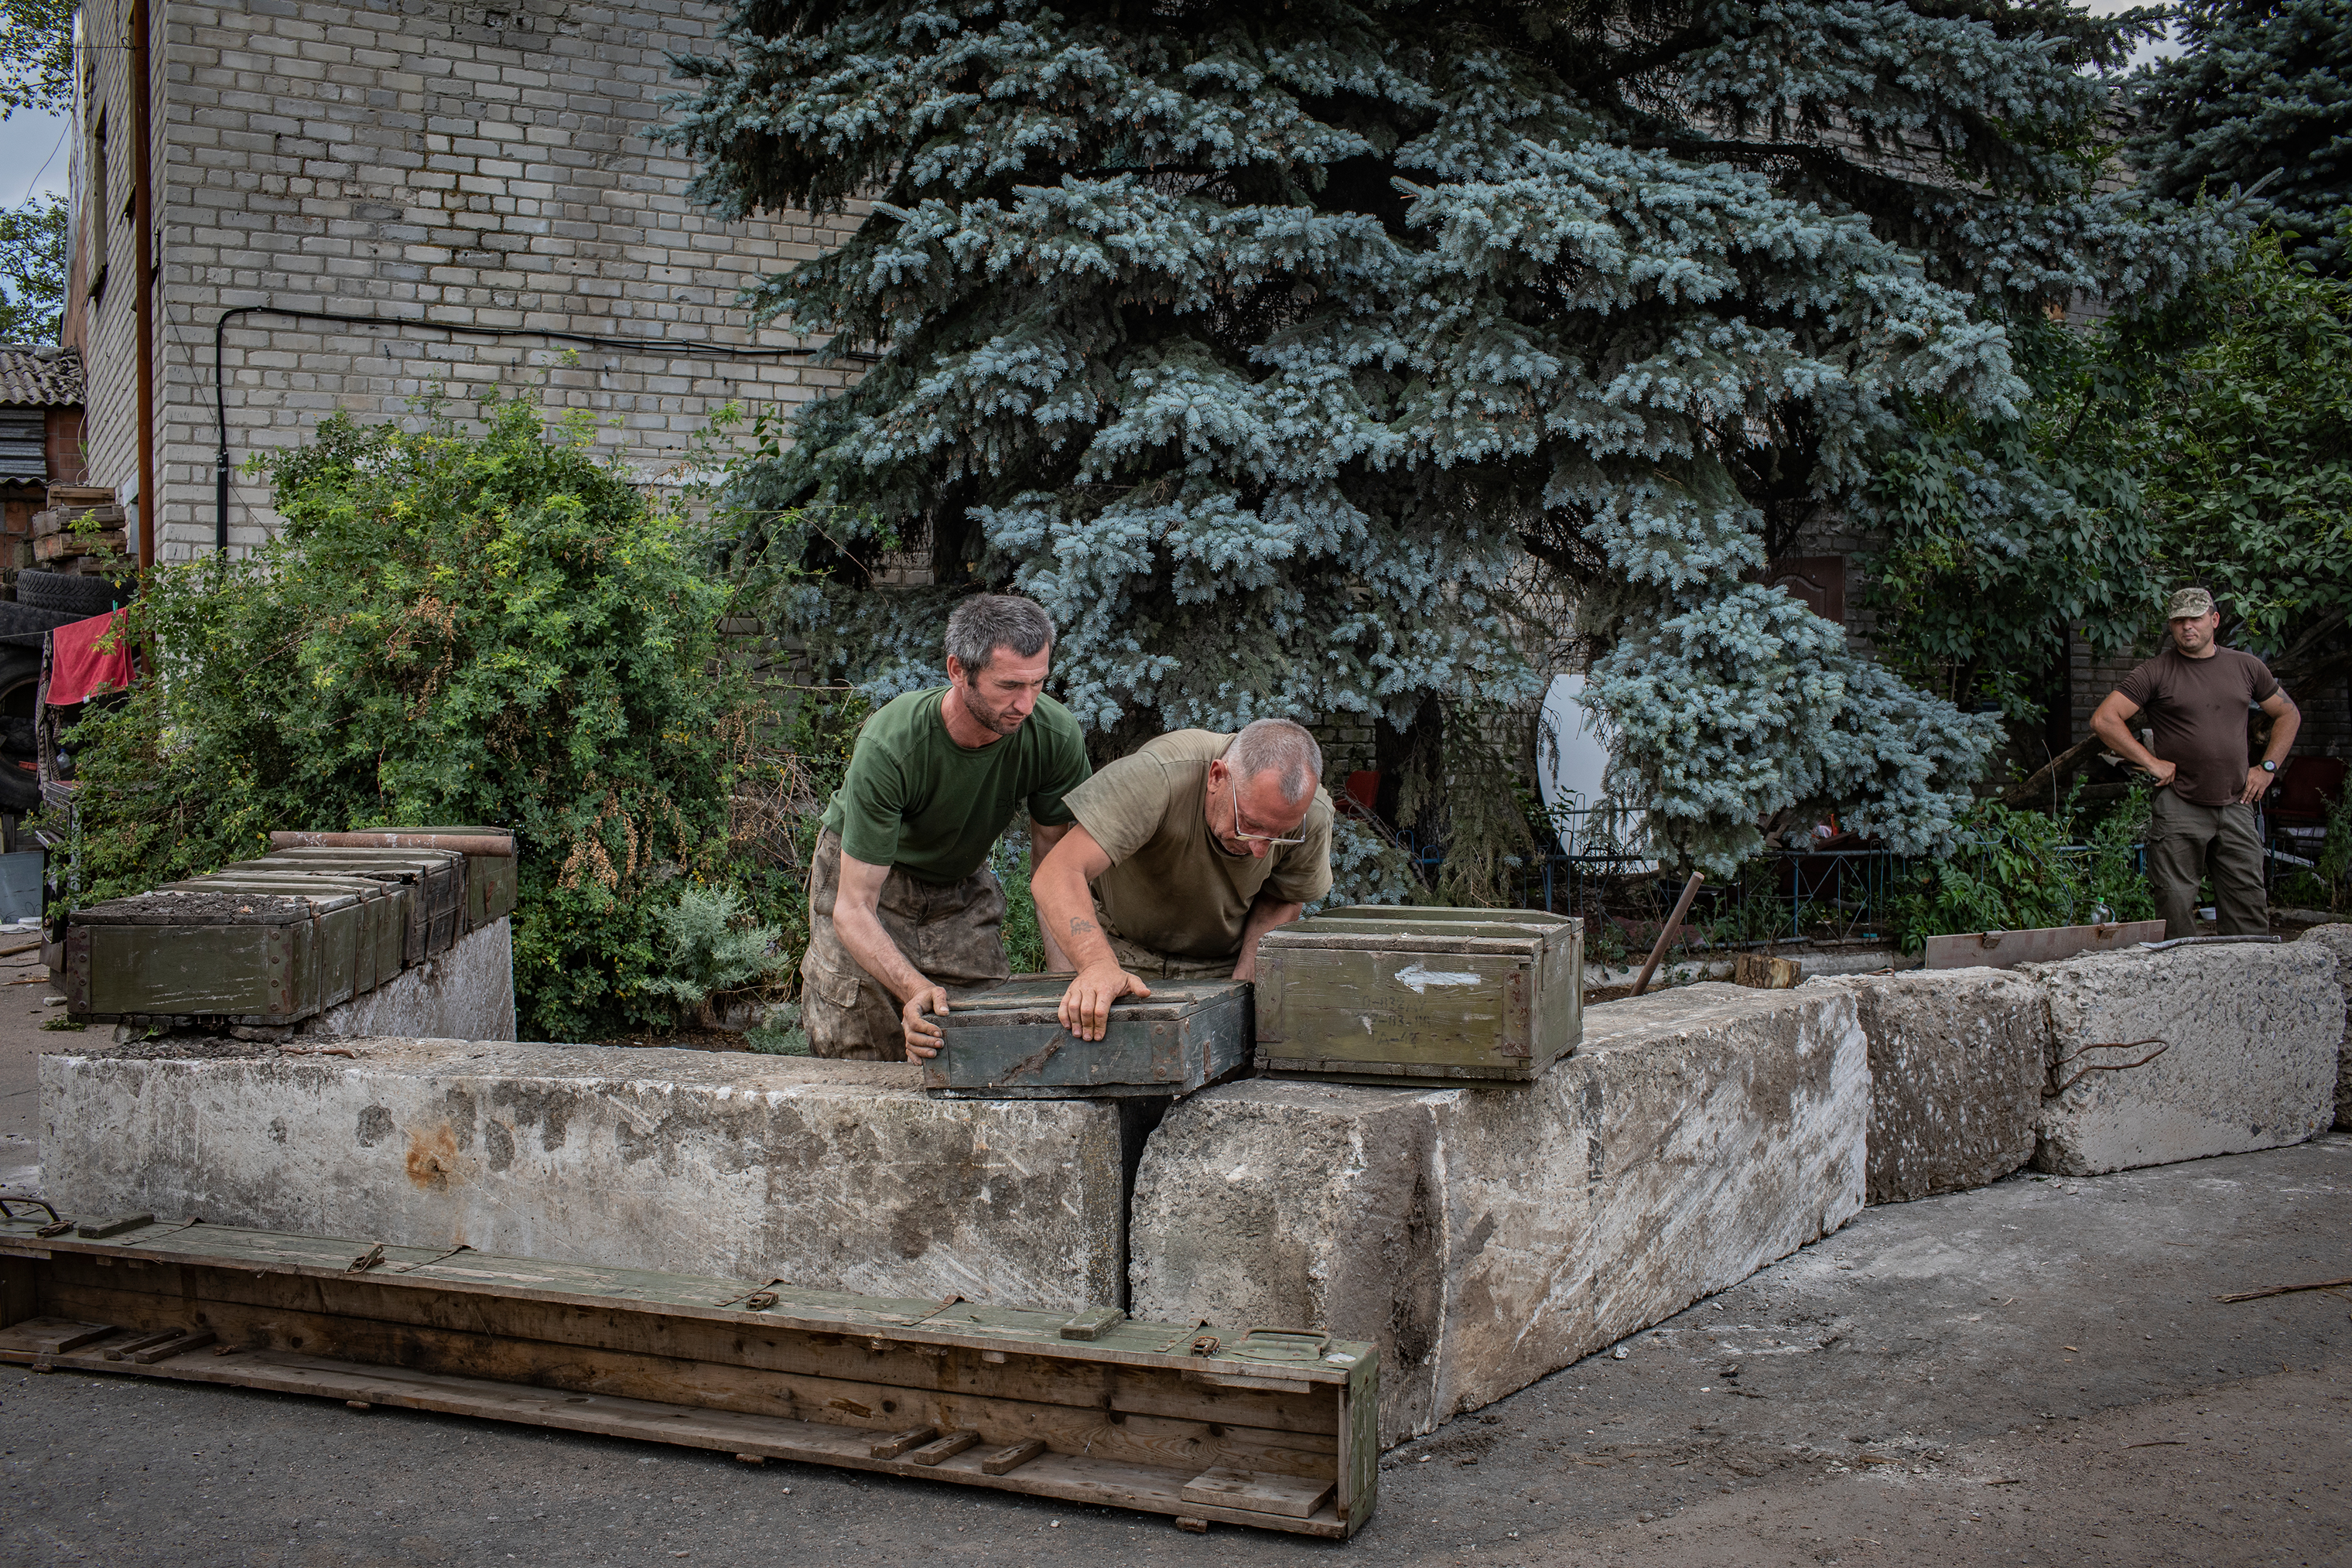 Members of the Ukrainian army build fortifications at a base near Peski. Soldiers spend most of their time watching the enemy's positions and sustaining their own living. Activities like digging trenches and building fortifications, cutting wood, cooking and doing laundry take up much more time than actual fighting.